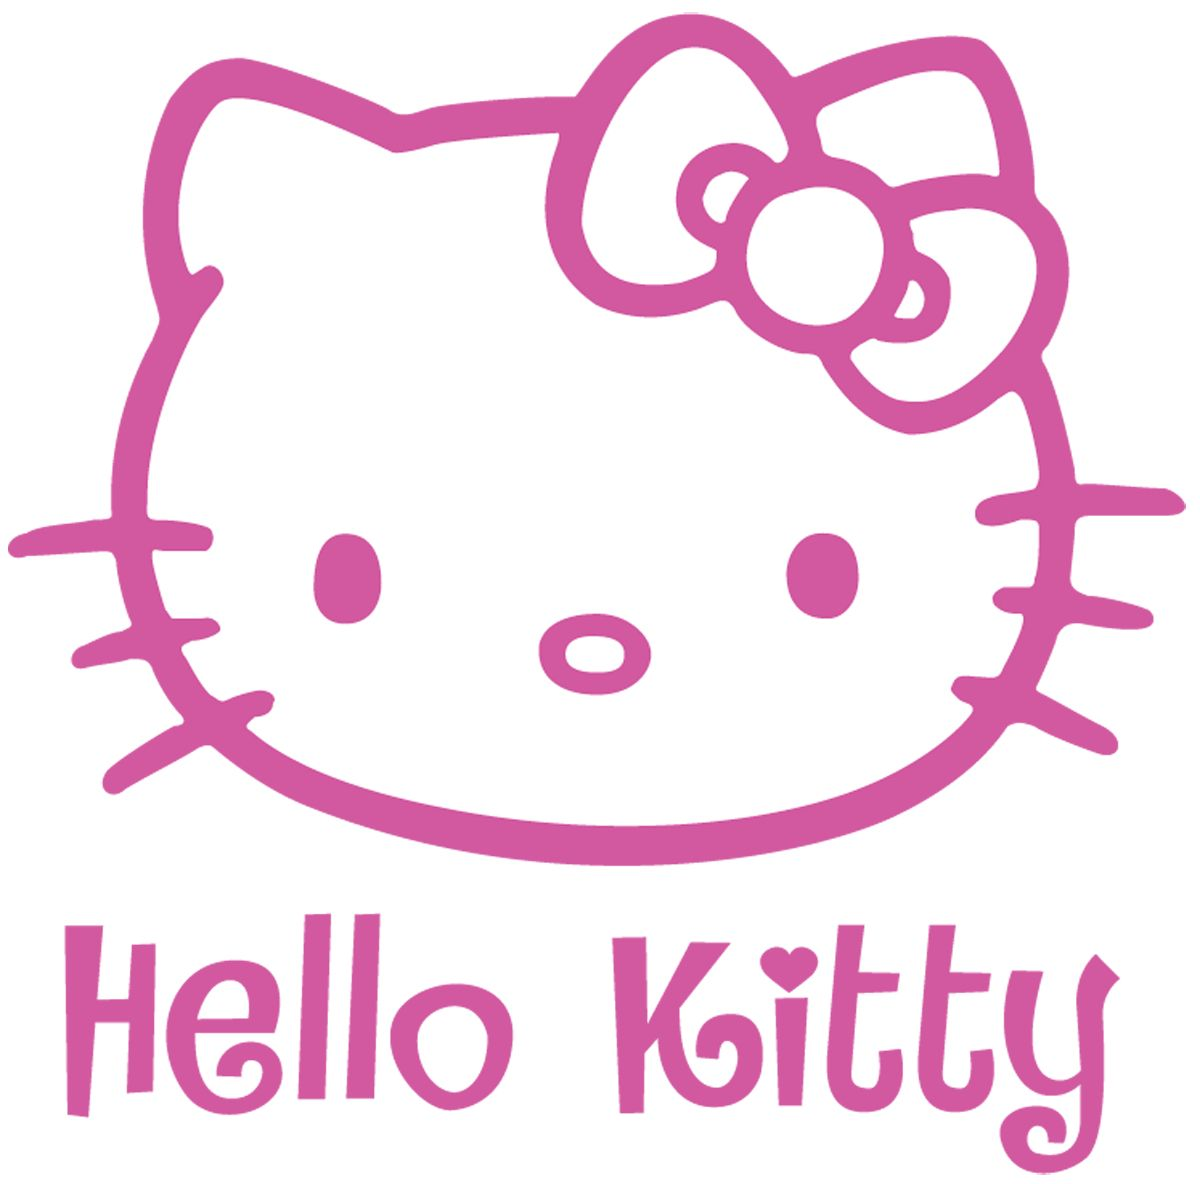 hello kitty file picture hello kitty kitty and svg file rh pinterest com hello kitty logo font download hello kitty logo font free download